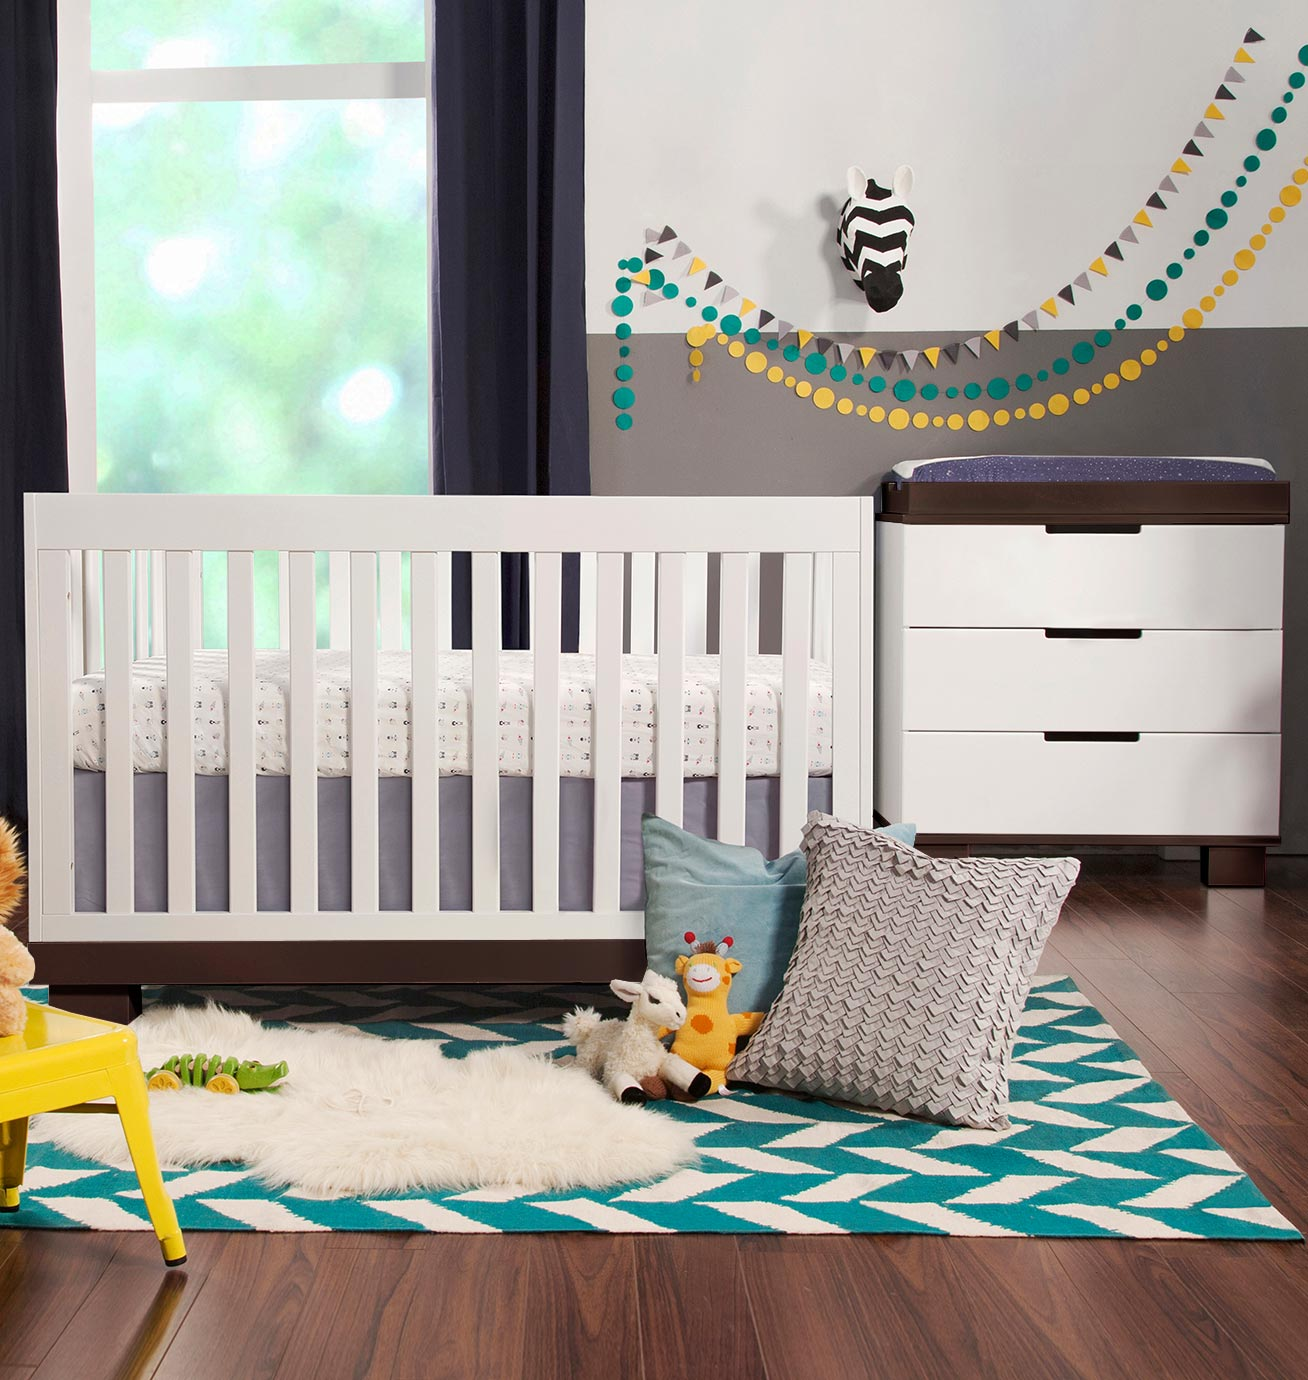 Babyletto 2 piece nursery set modo 3 in 1 convertible crib and dresser changer in white free shipping